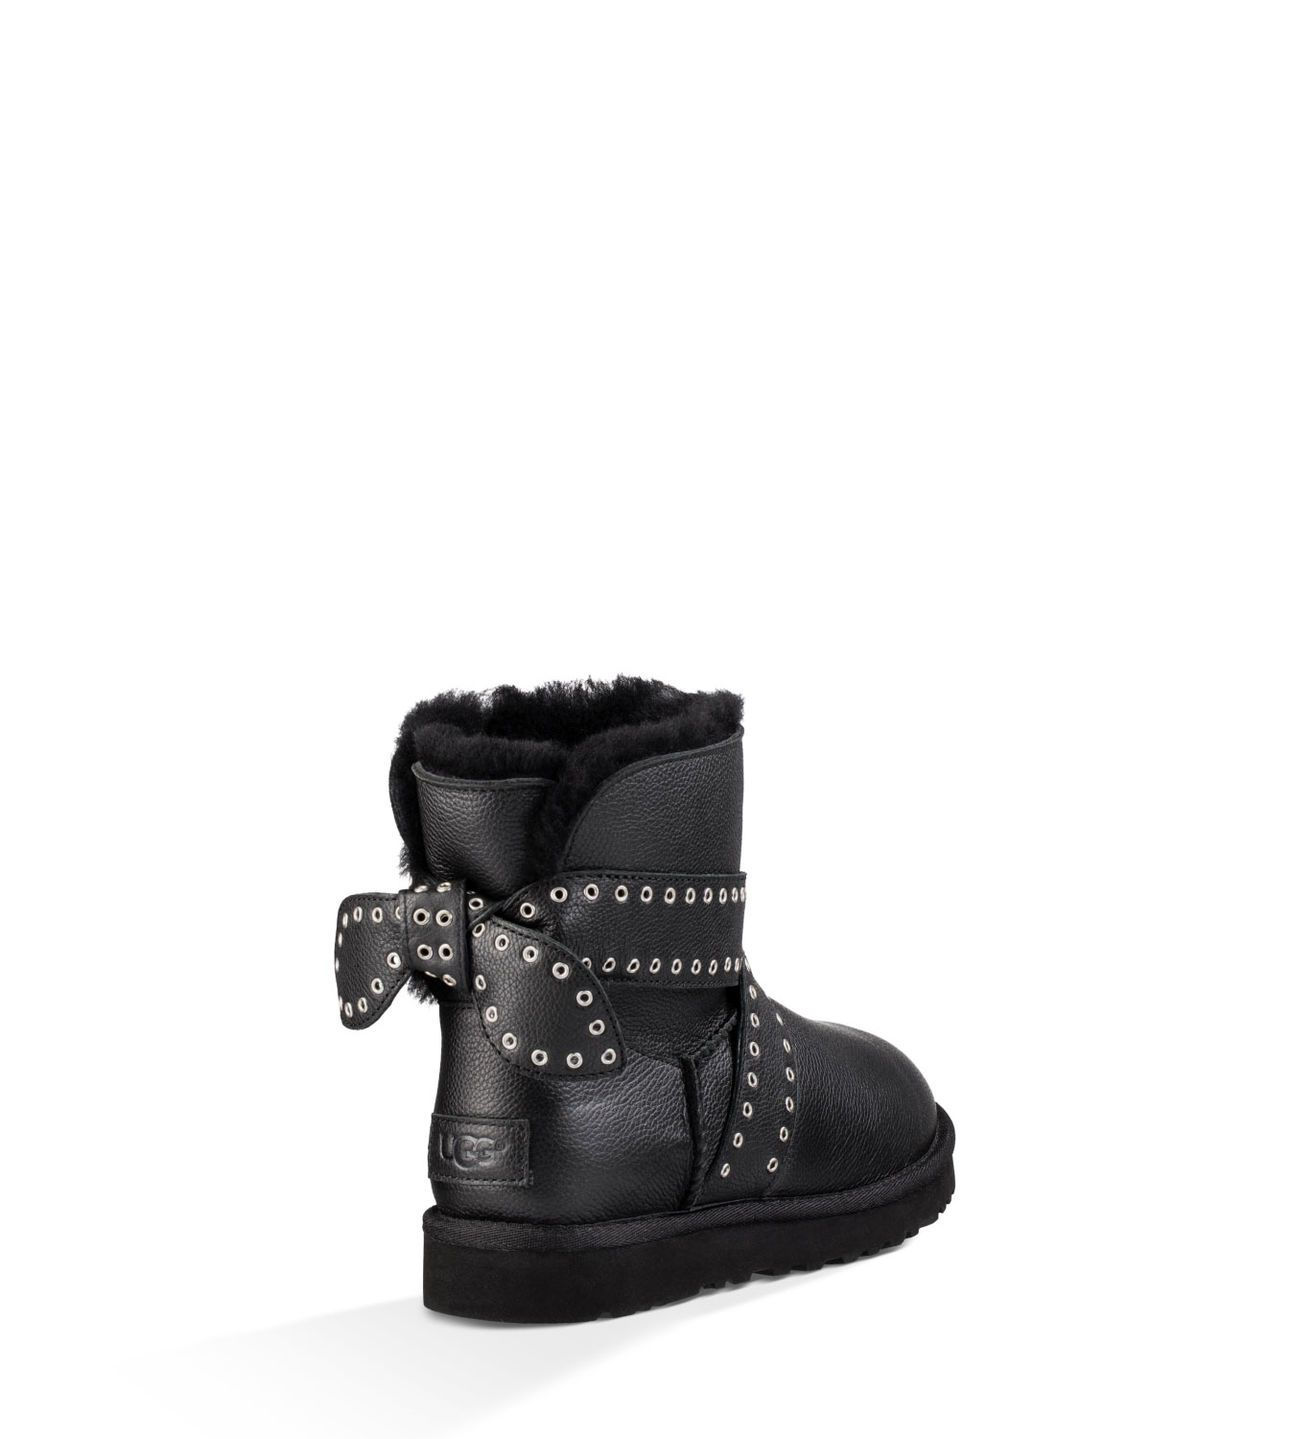 9db81f6567e Cameron - Cameron   Bags and Boots   Ugg boots, Boots, Ugg boots ...